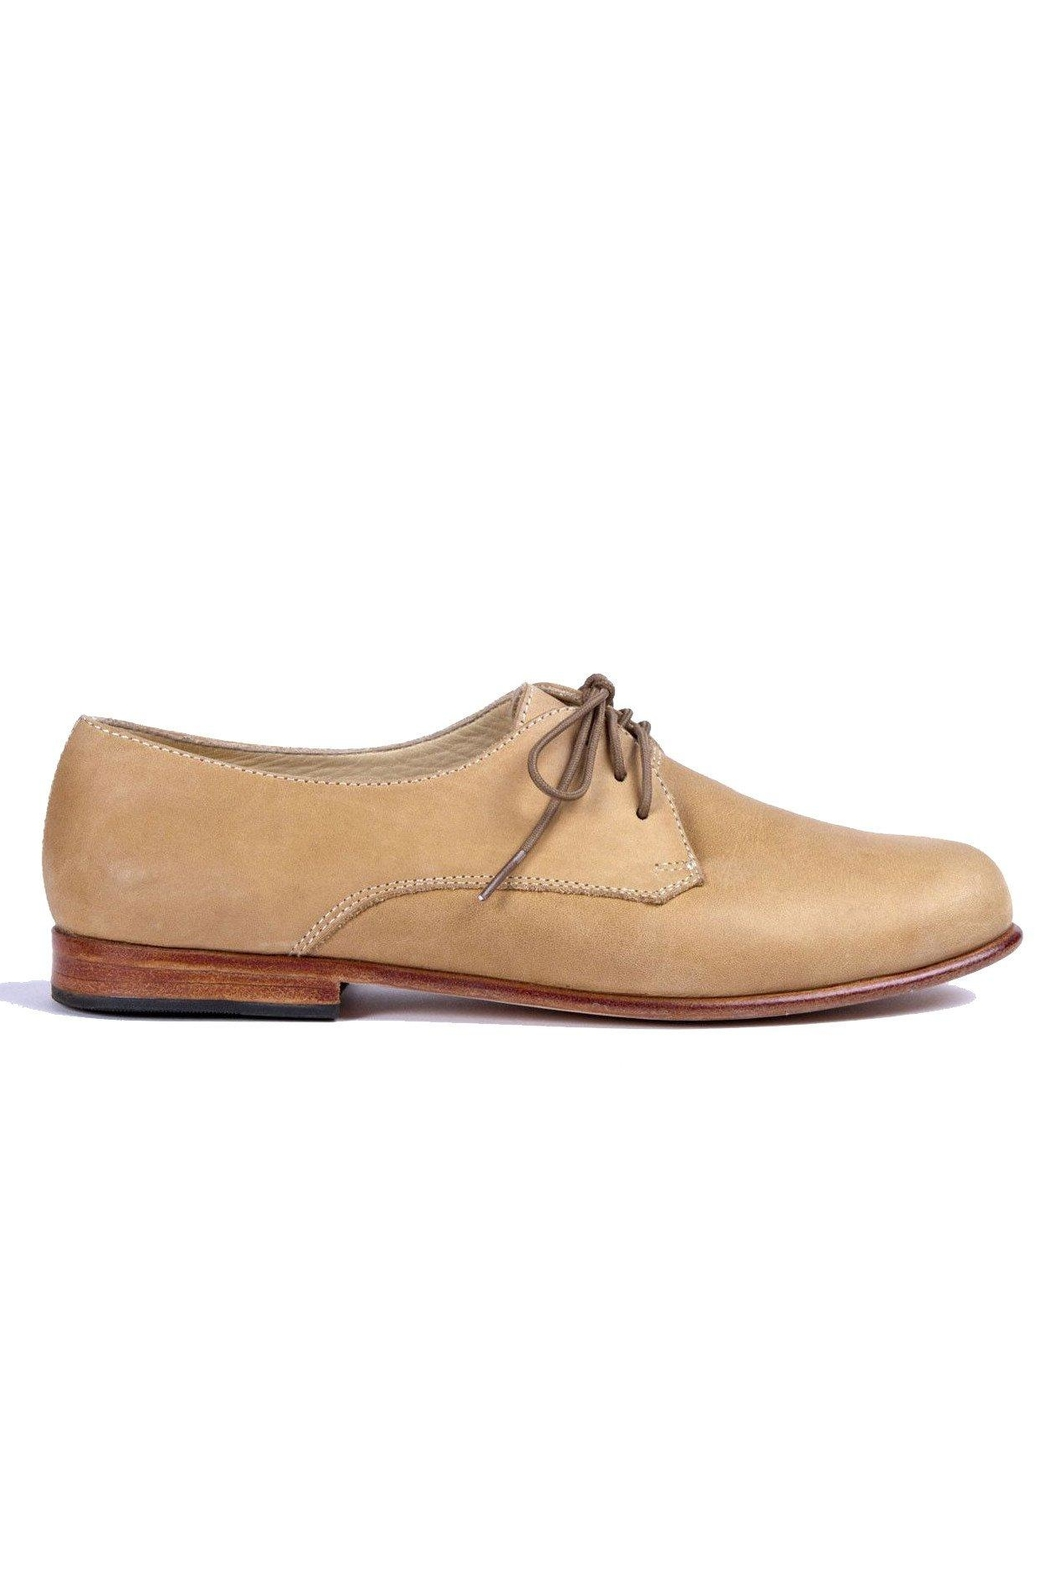 Nisolo Almond Oliver Oxford Shoes - Back Cropped Image